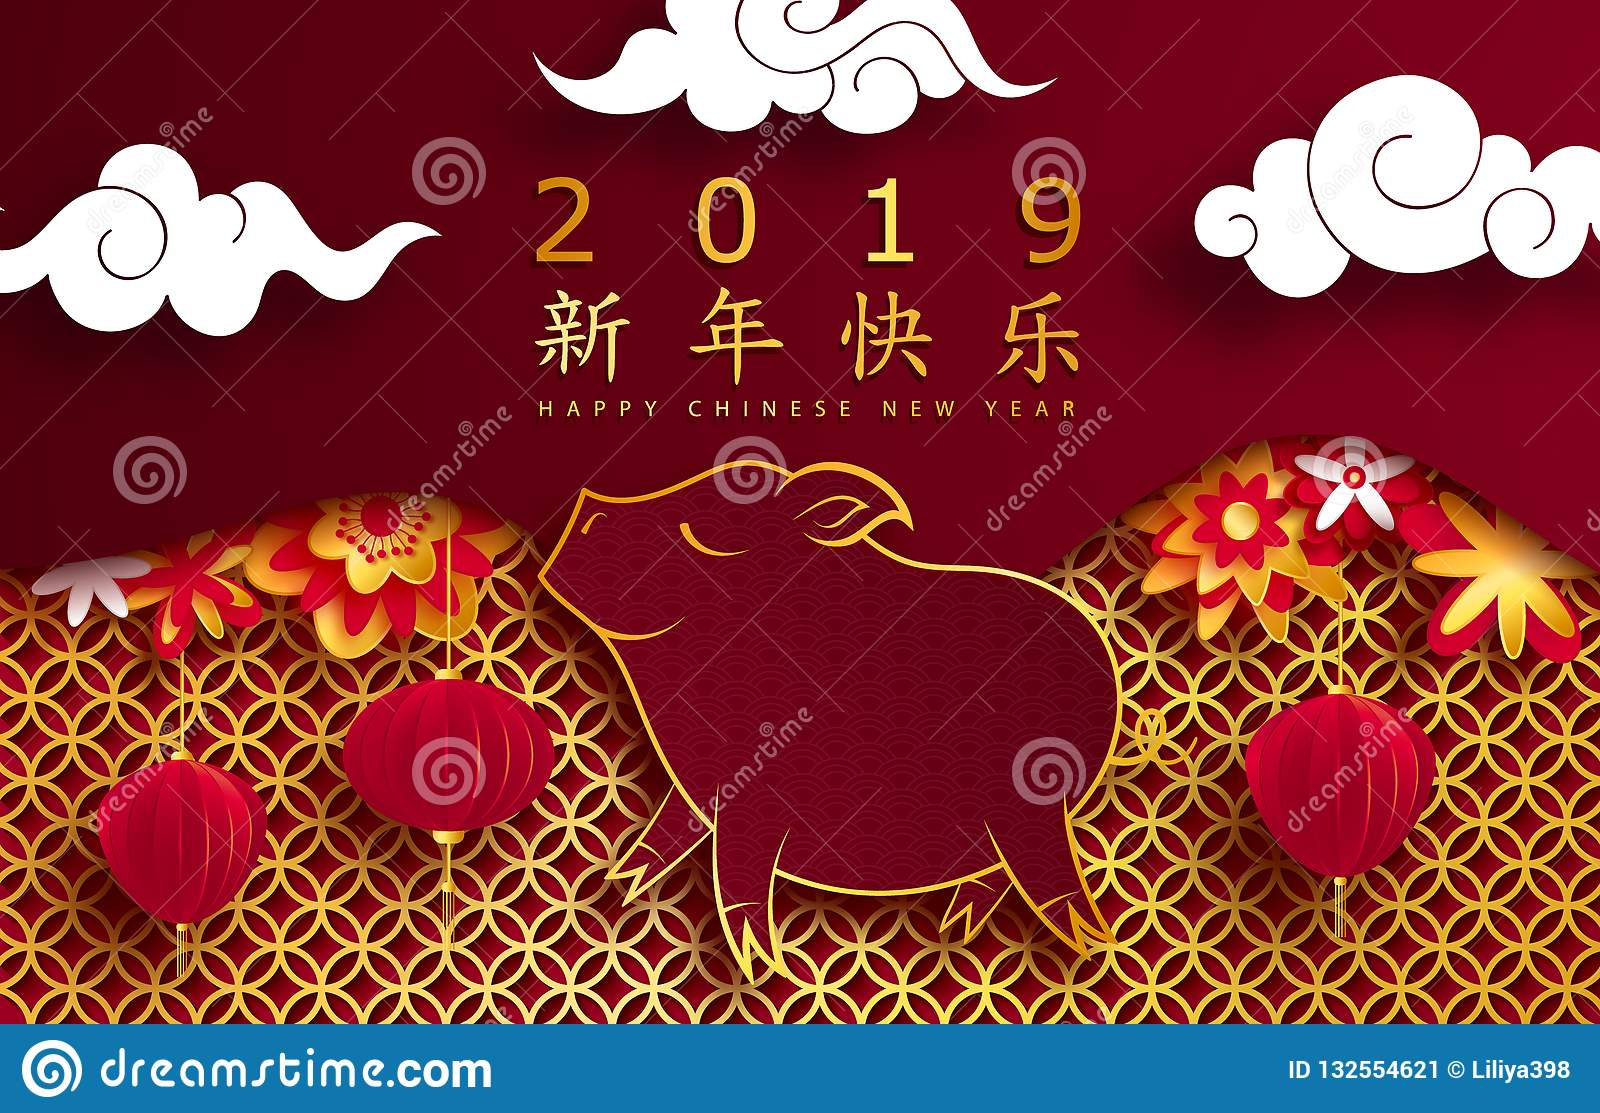 happy chinese new year 2019 year of the pig paper cut style background for greetings